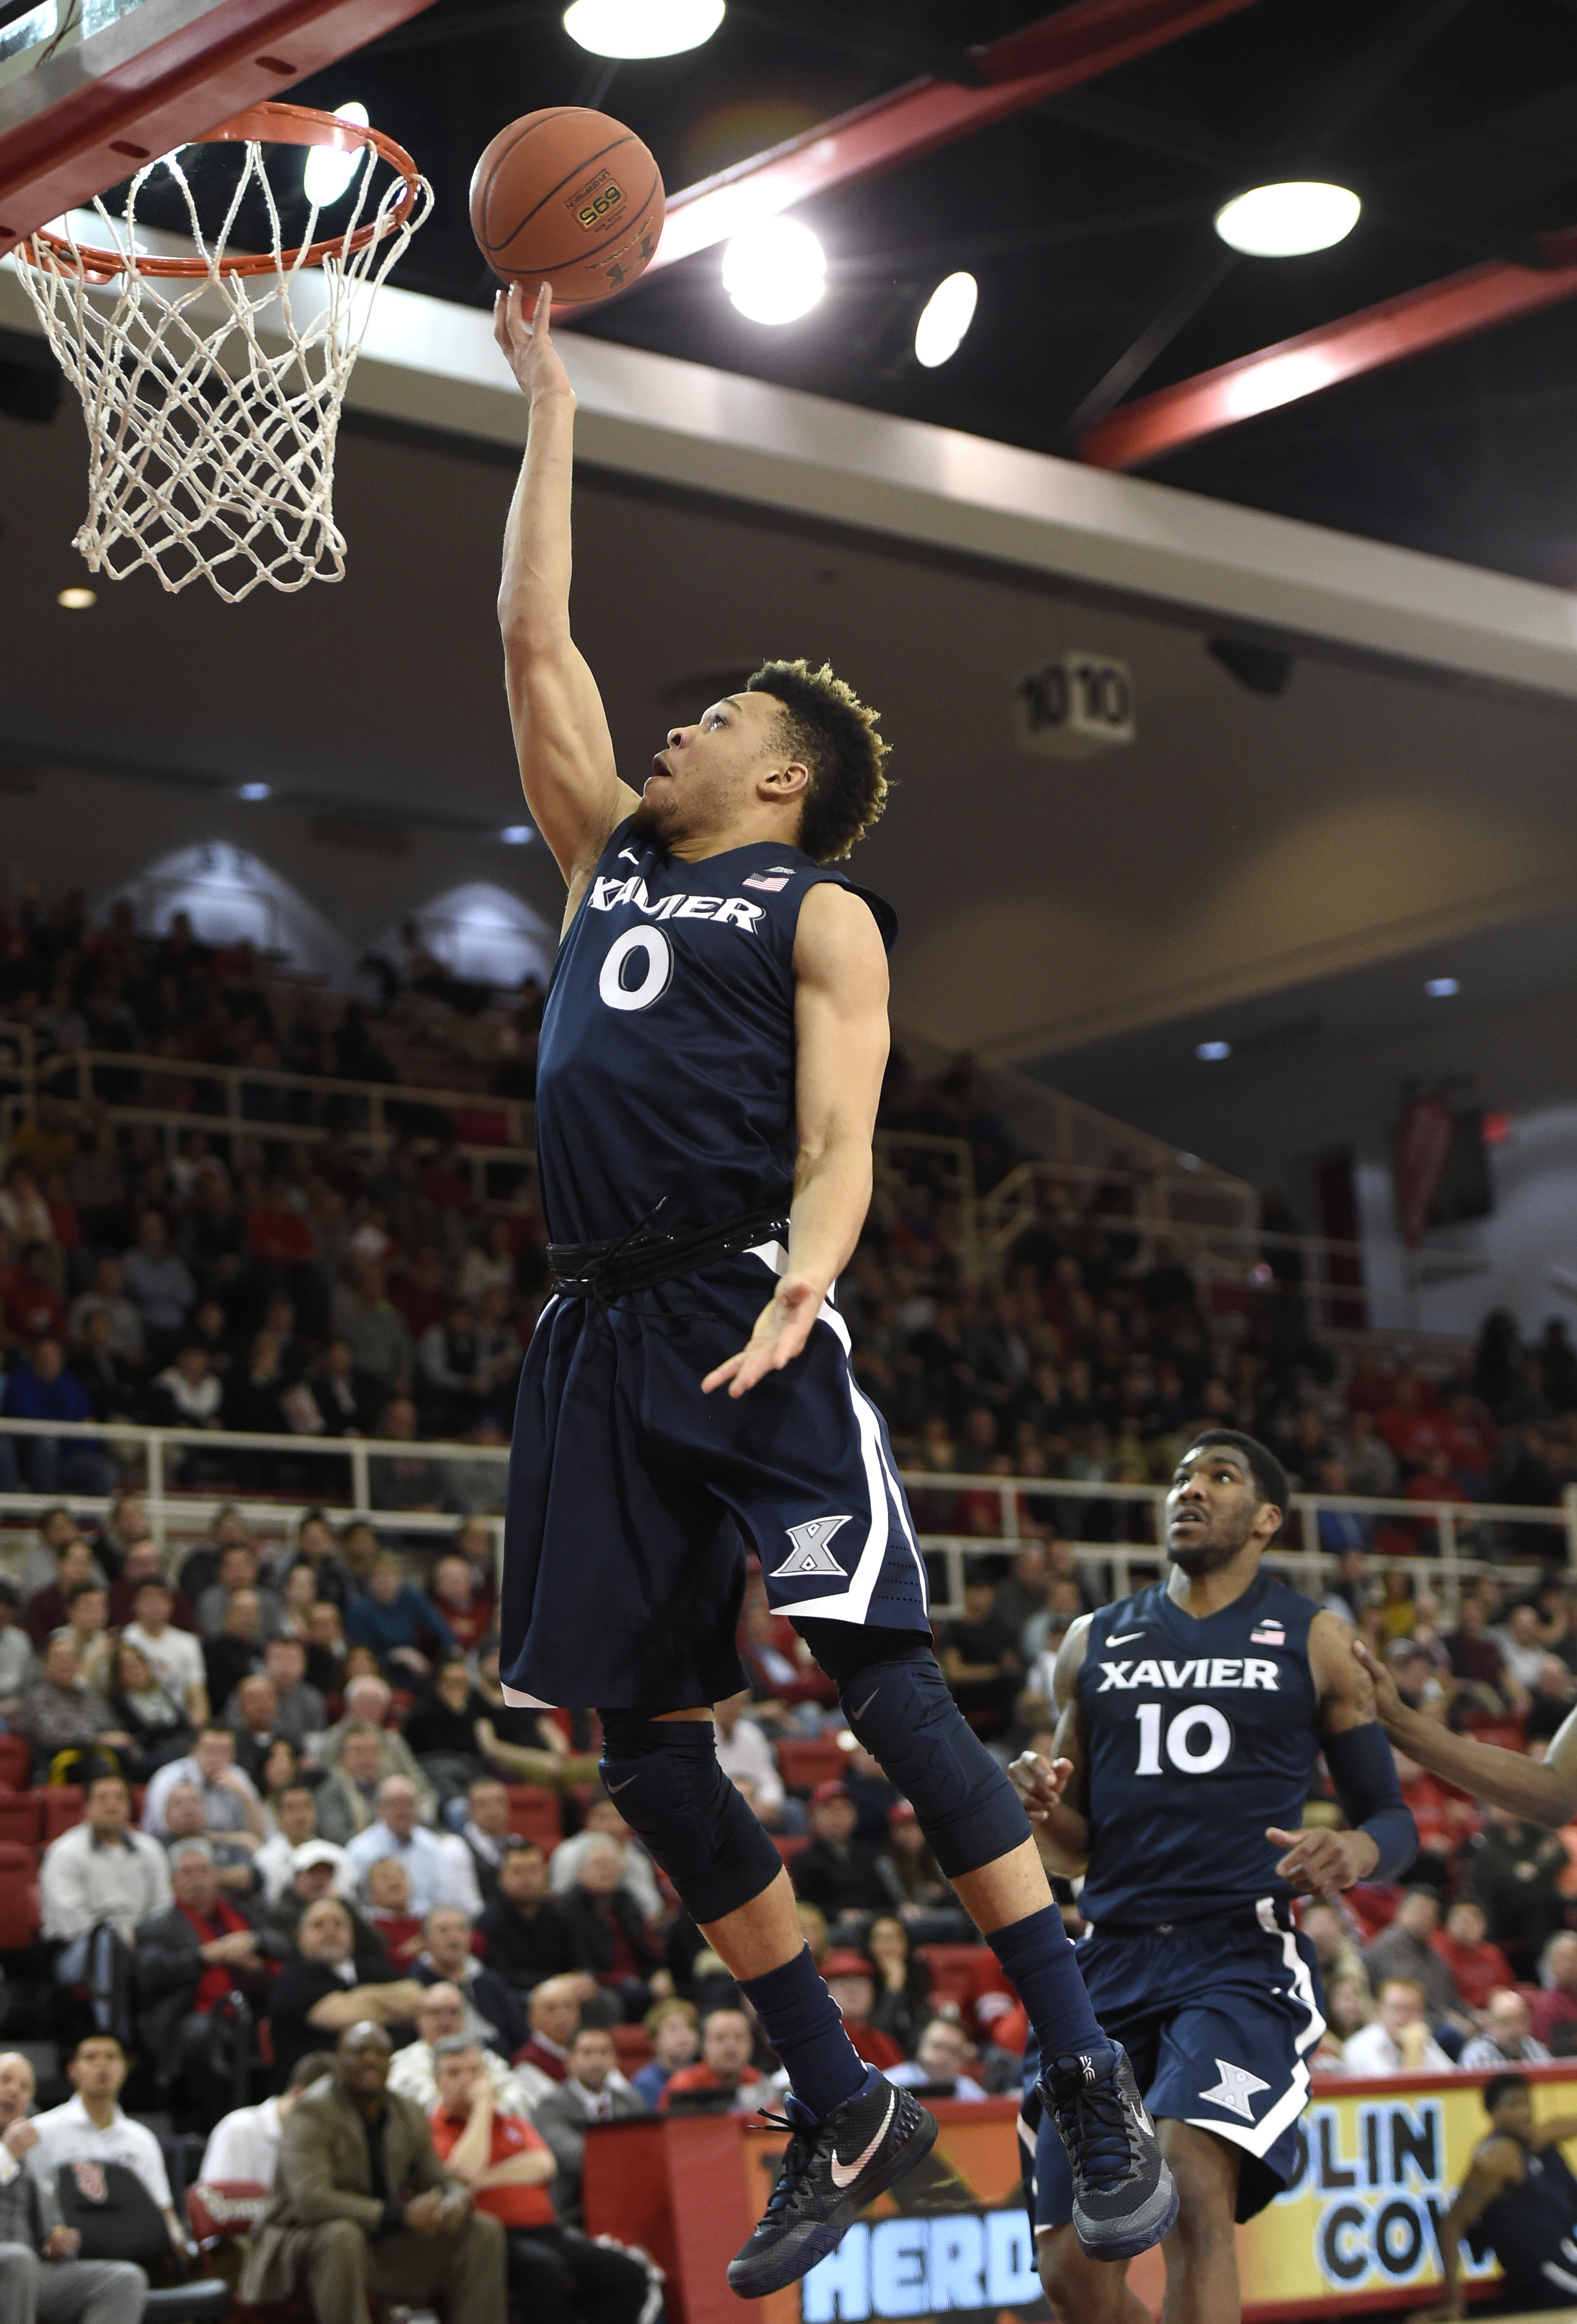 Xavier's guard Larry Austin Jr. (0) drives the ball to the basket as guard Remy Abell (10) looks for the rebound during the first half of an NCAA college basketball game against St. John's on Wednesday, Jan. 6, 2016 in New York. (AP Photo/Kathy Kmonicek)